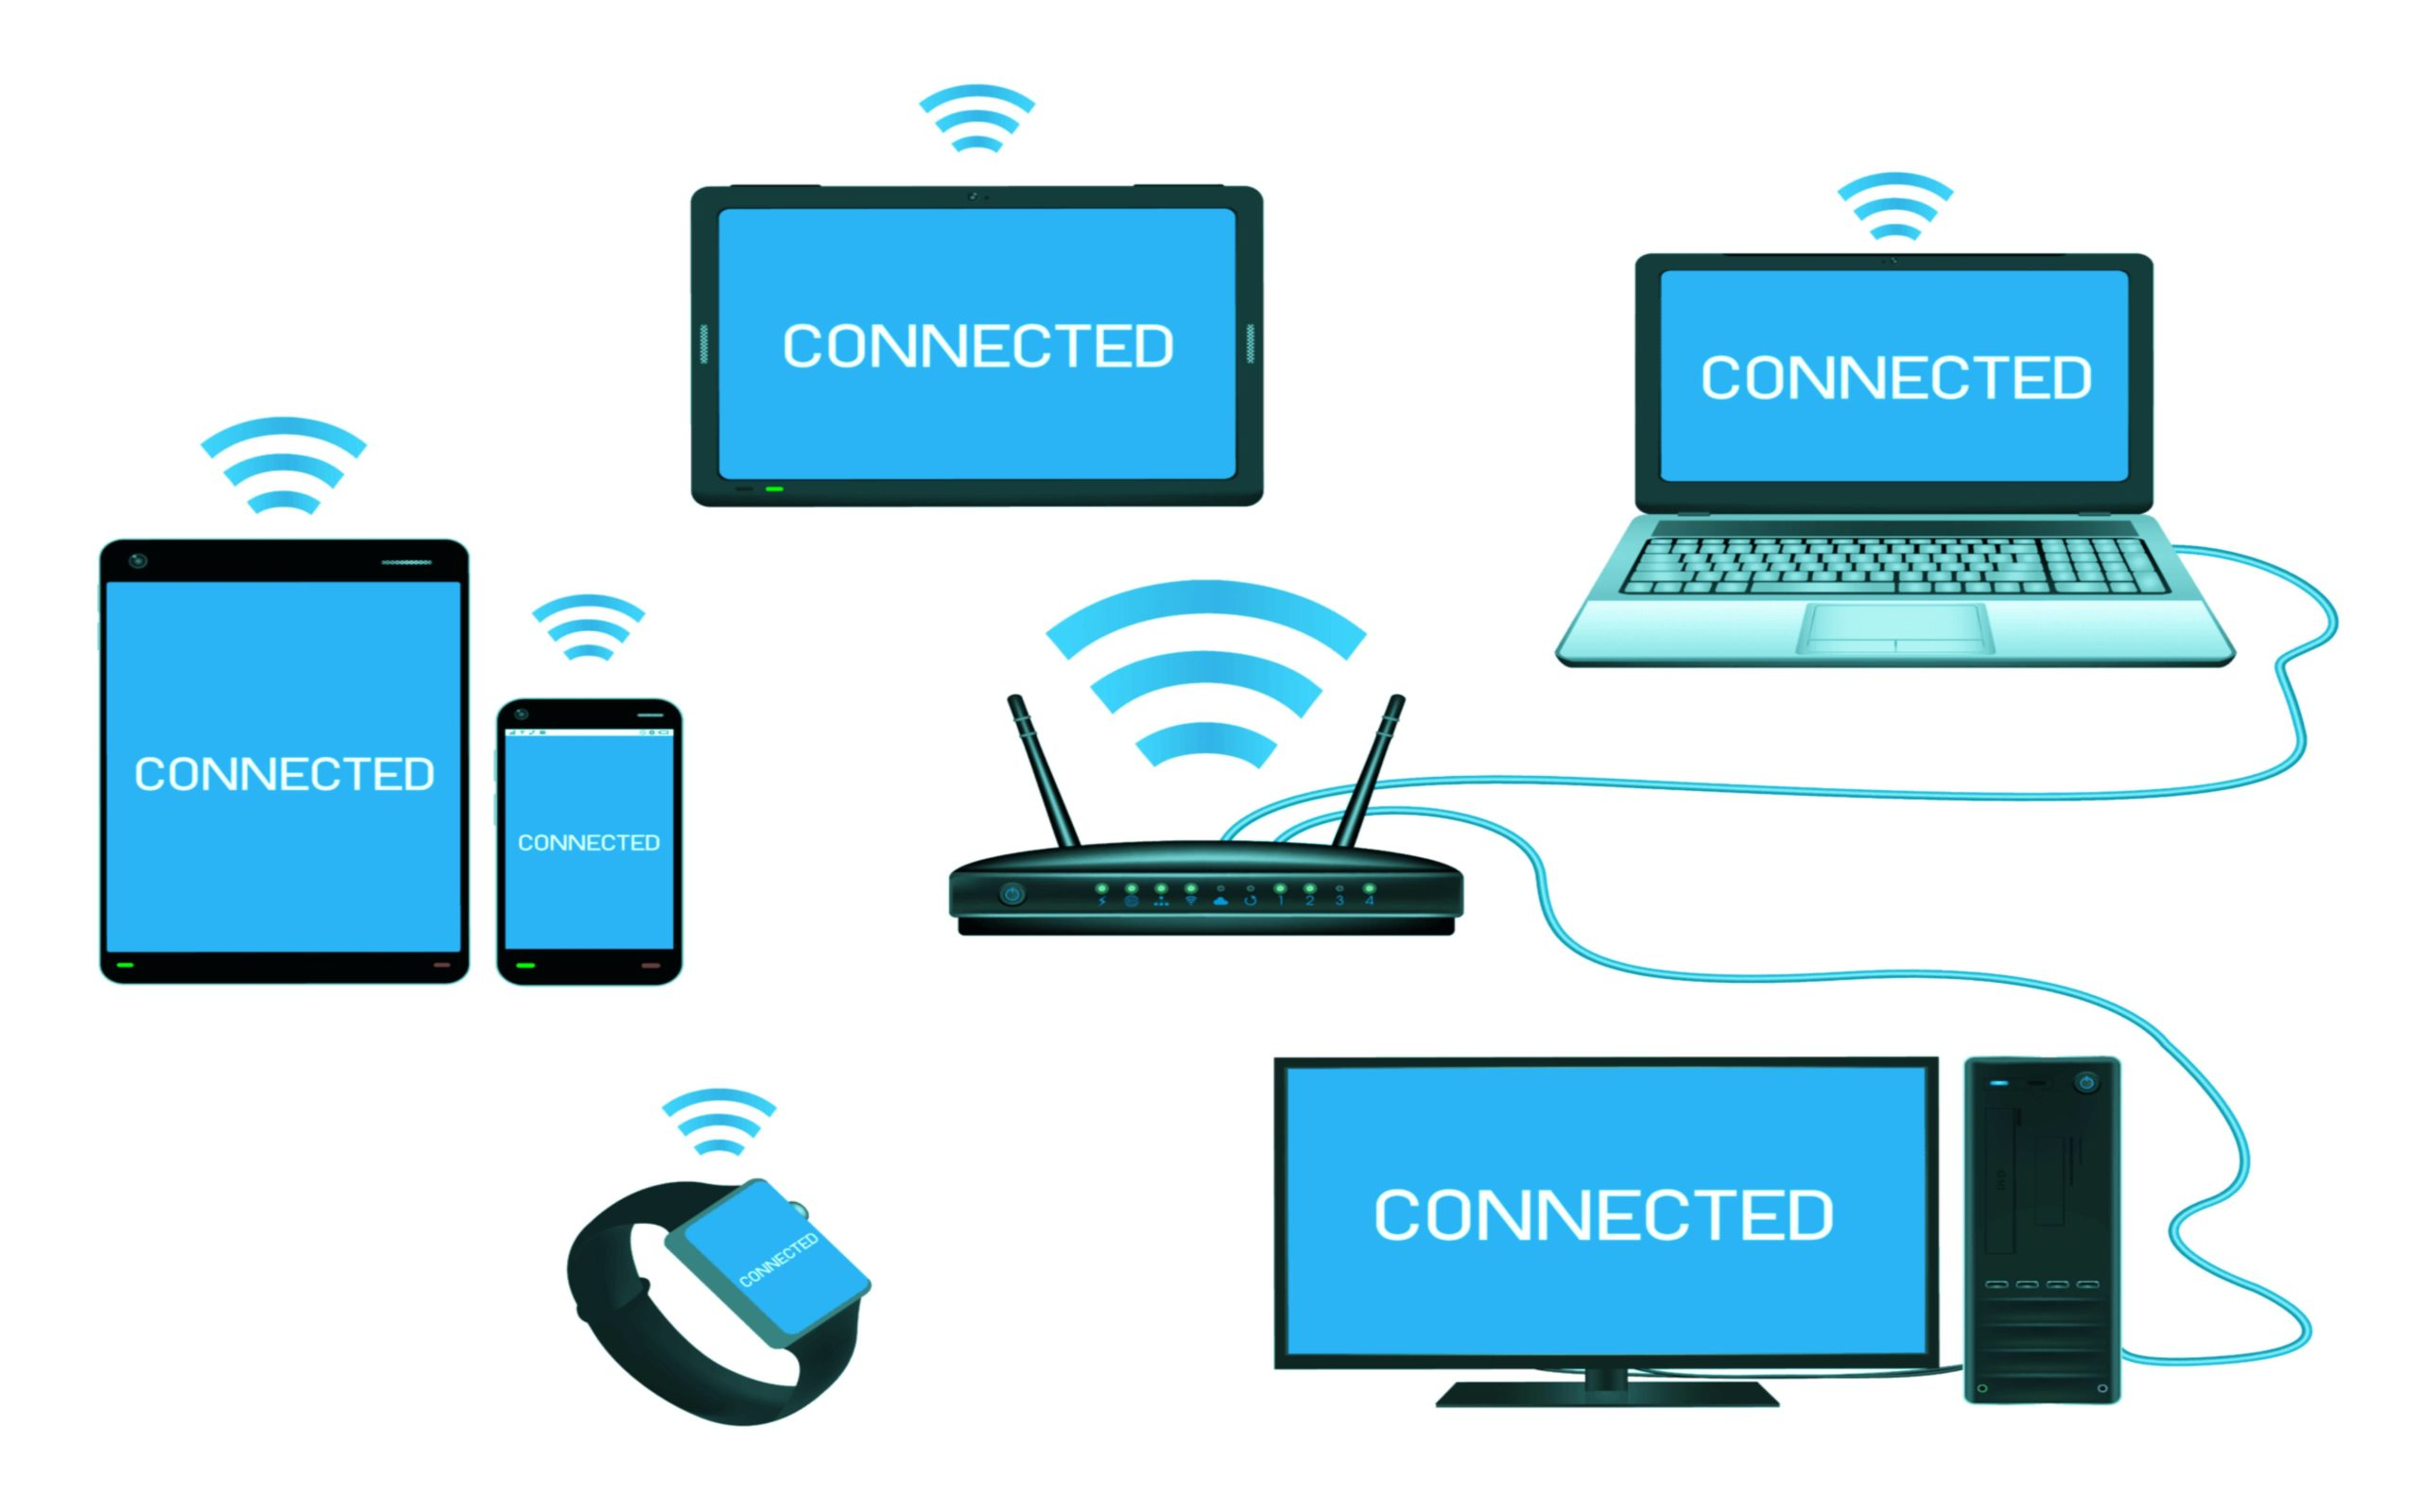 WiFi: How To Improve Your Home WiFi Network